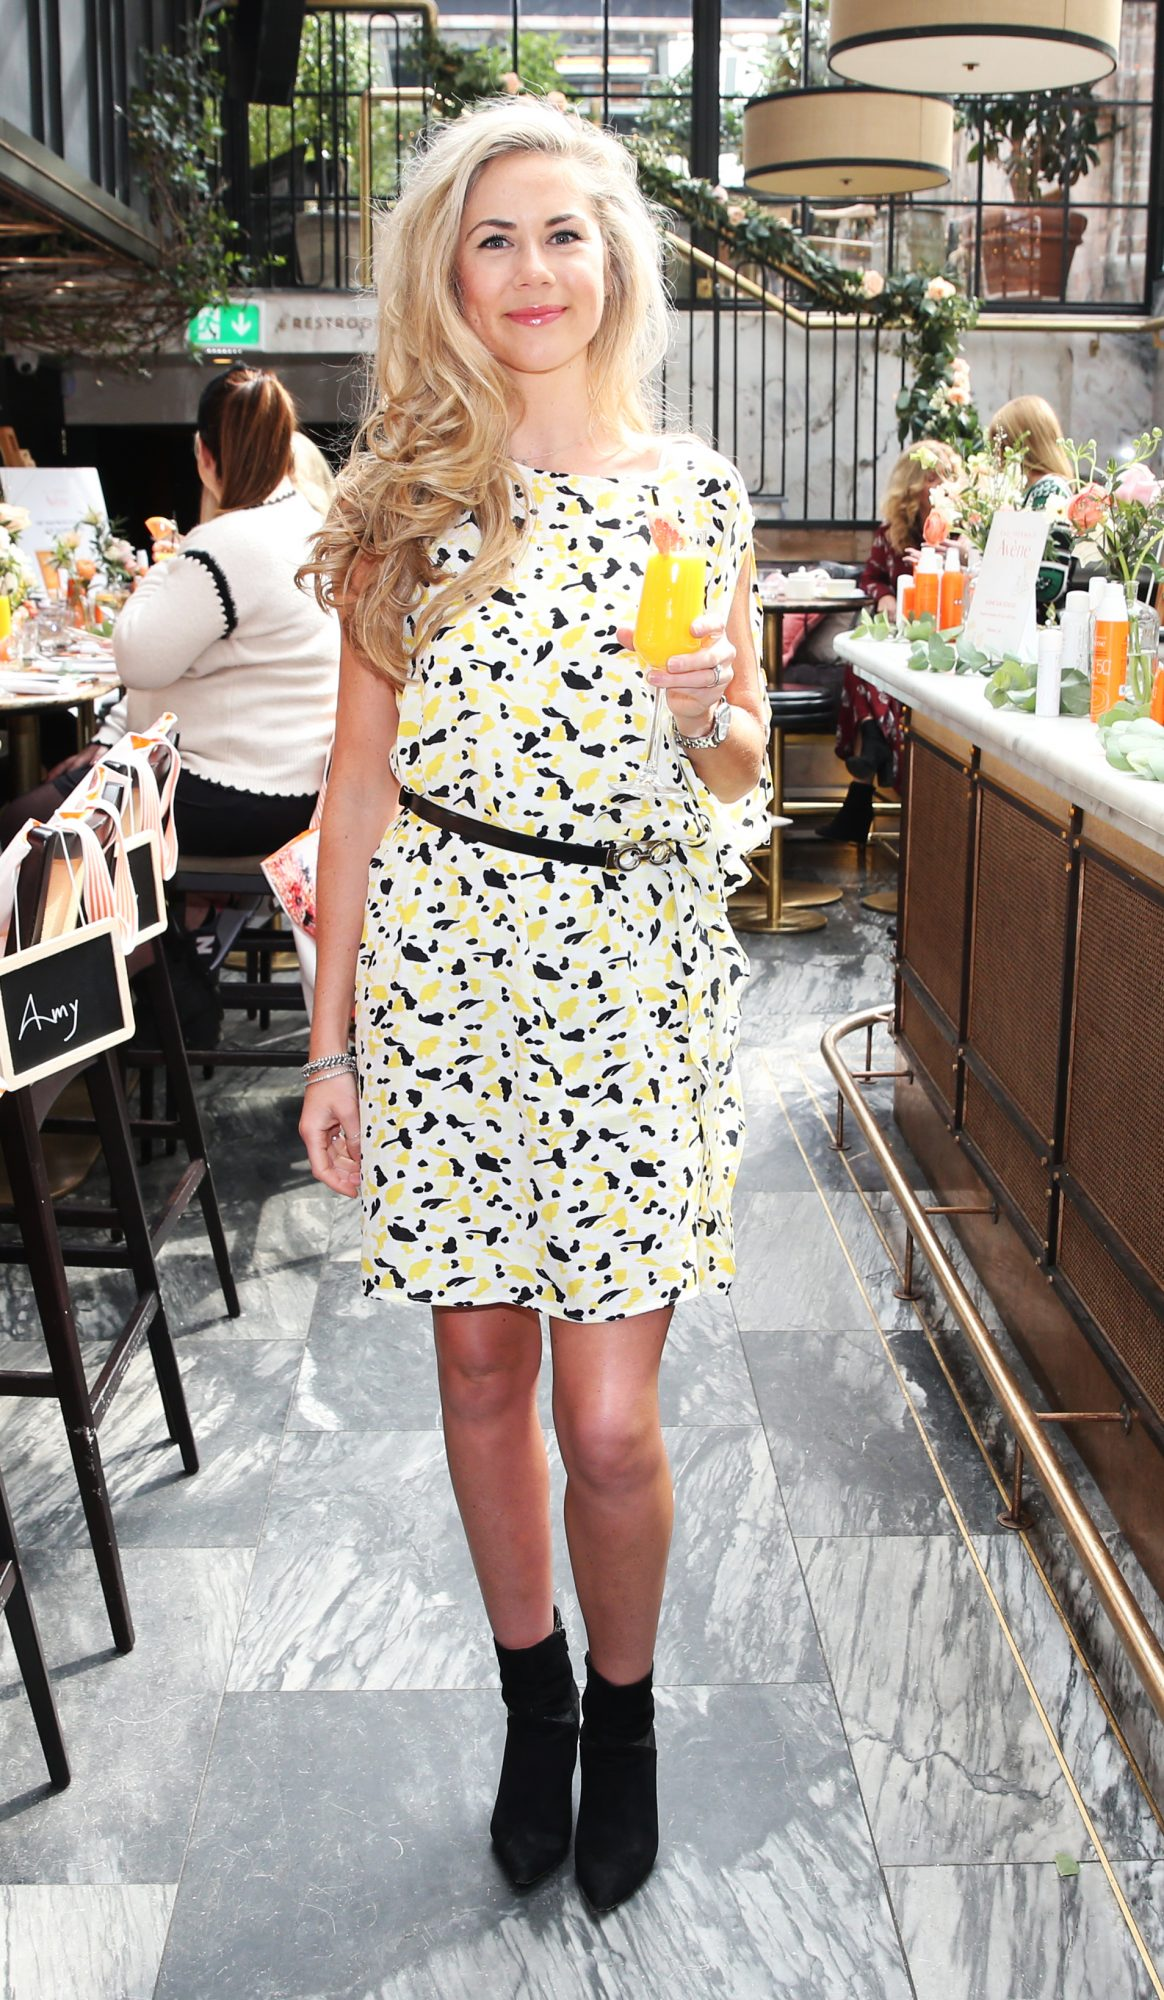 Pictured is Sinead Mooney at the launch of the new Avène Expert Suncare Range in The Grayson Dublin. The new range of suncare from the French brand is suitable for all skin types and includes a Sports Sun Cream, a City Shield BB Style High Protection Face Cream, two new SPF Body Sprays and a new Very High Protection Children's SPF. For more information visit www.avene.ie. Photo: Leon Farrell/Photocall Ireland.